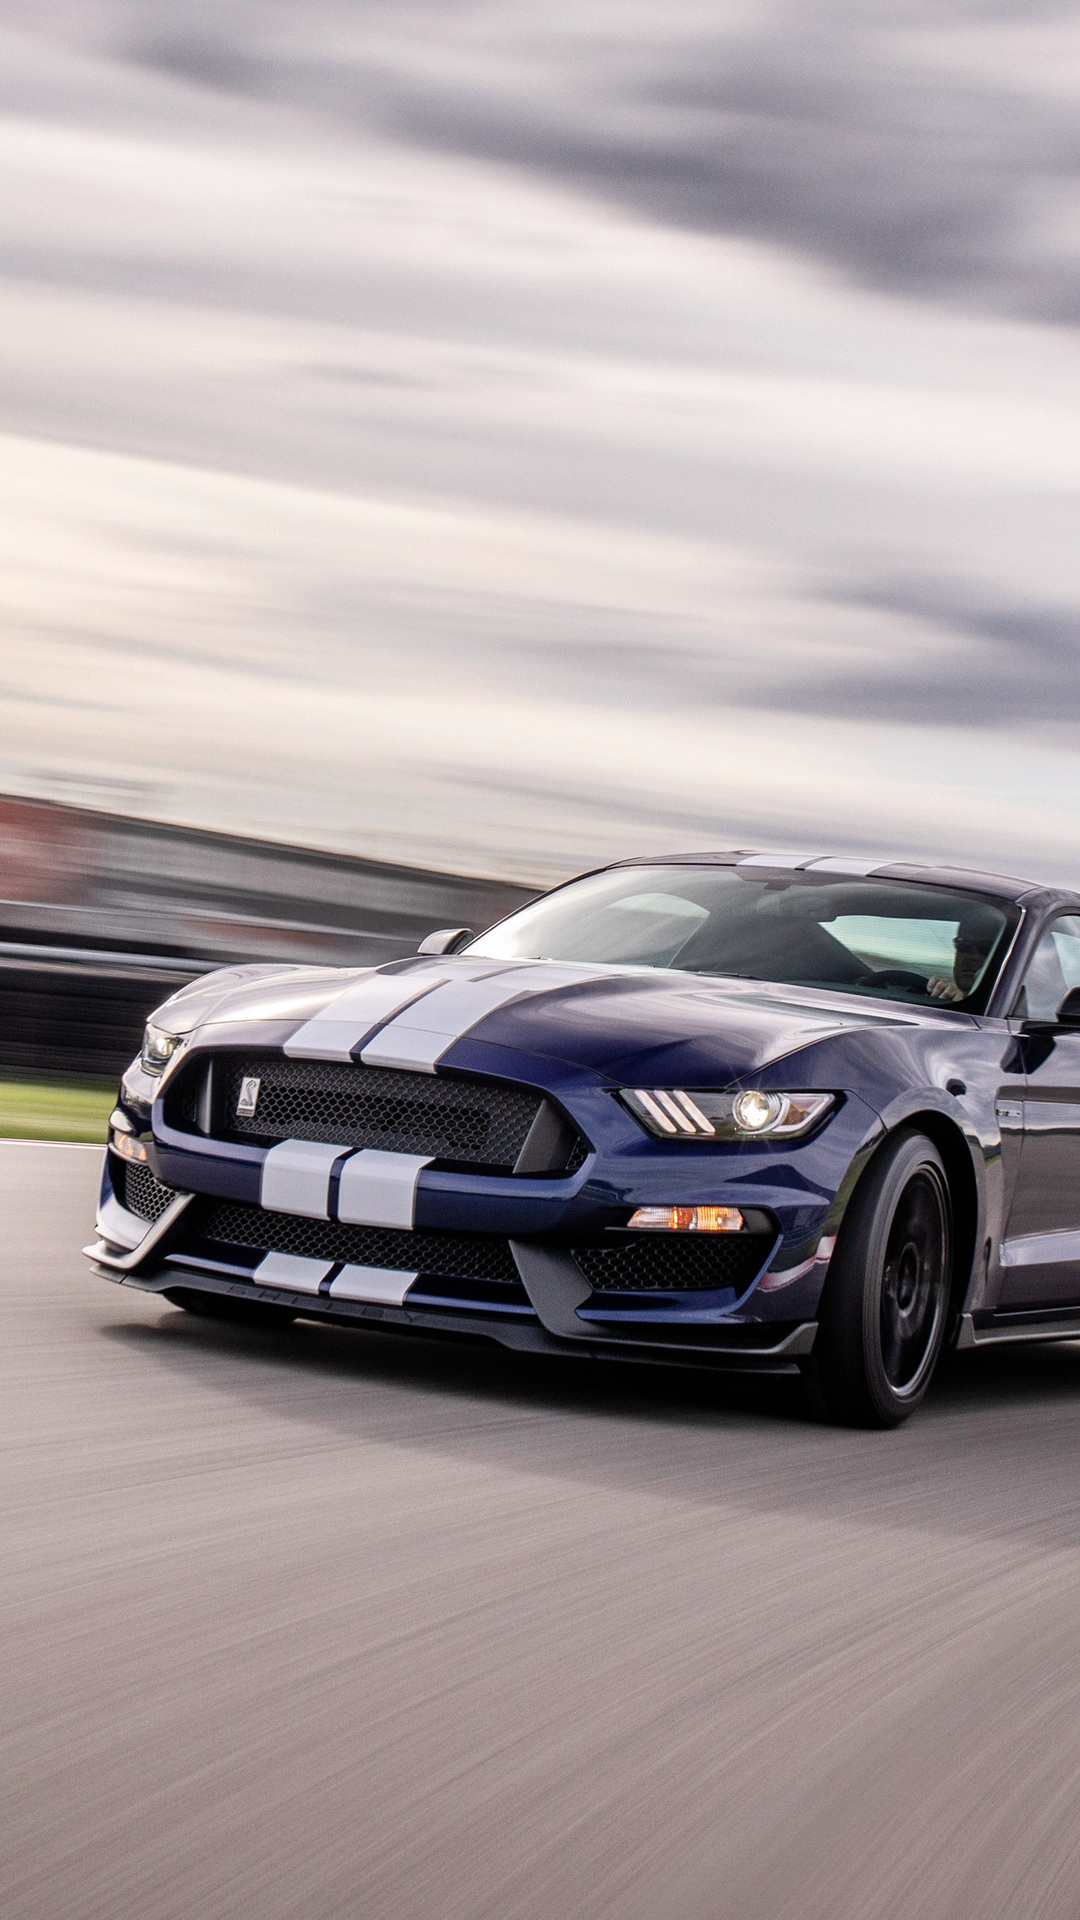 2019 Ford Mustang Shelby Gt350 - Ford Mustang Shelby 2019 , HD Wallpaper & Backgrounds